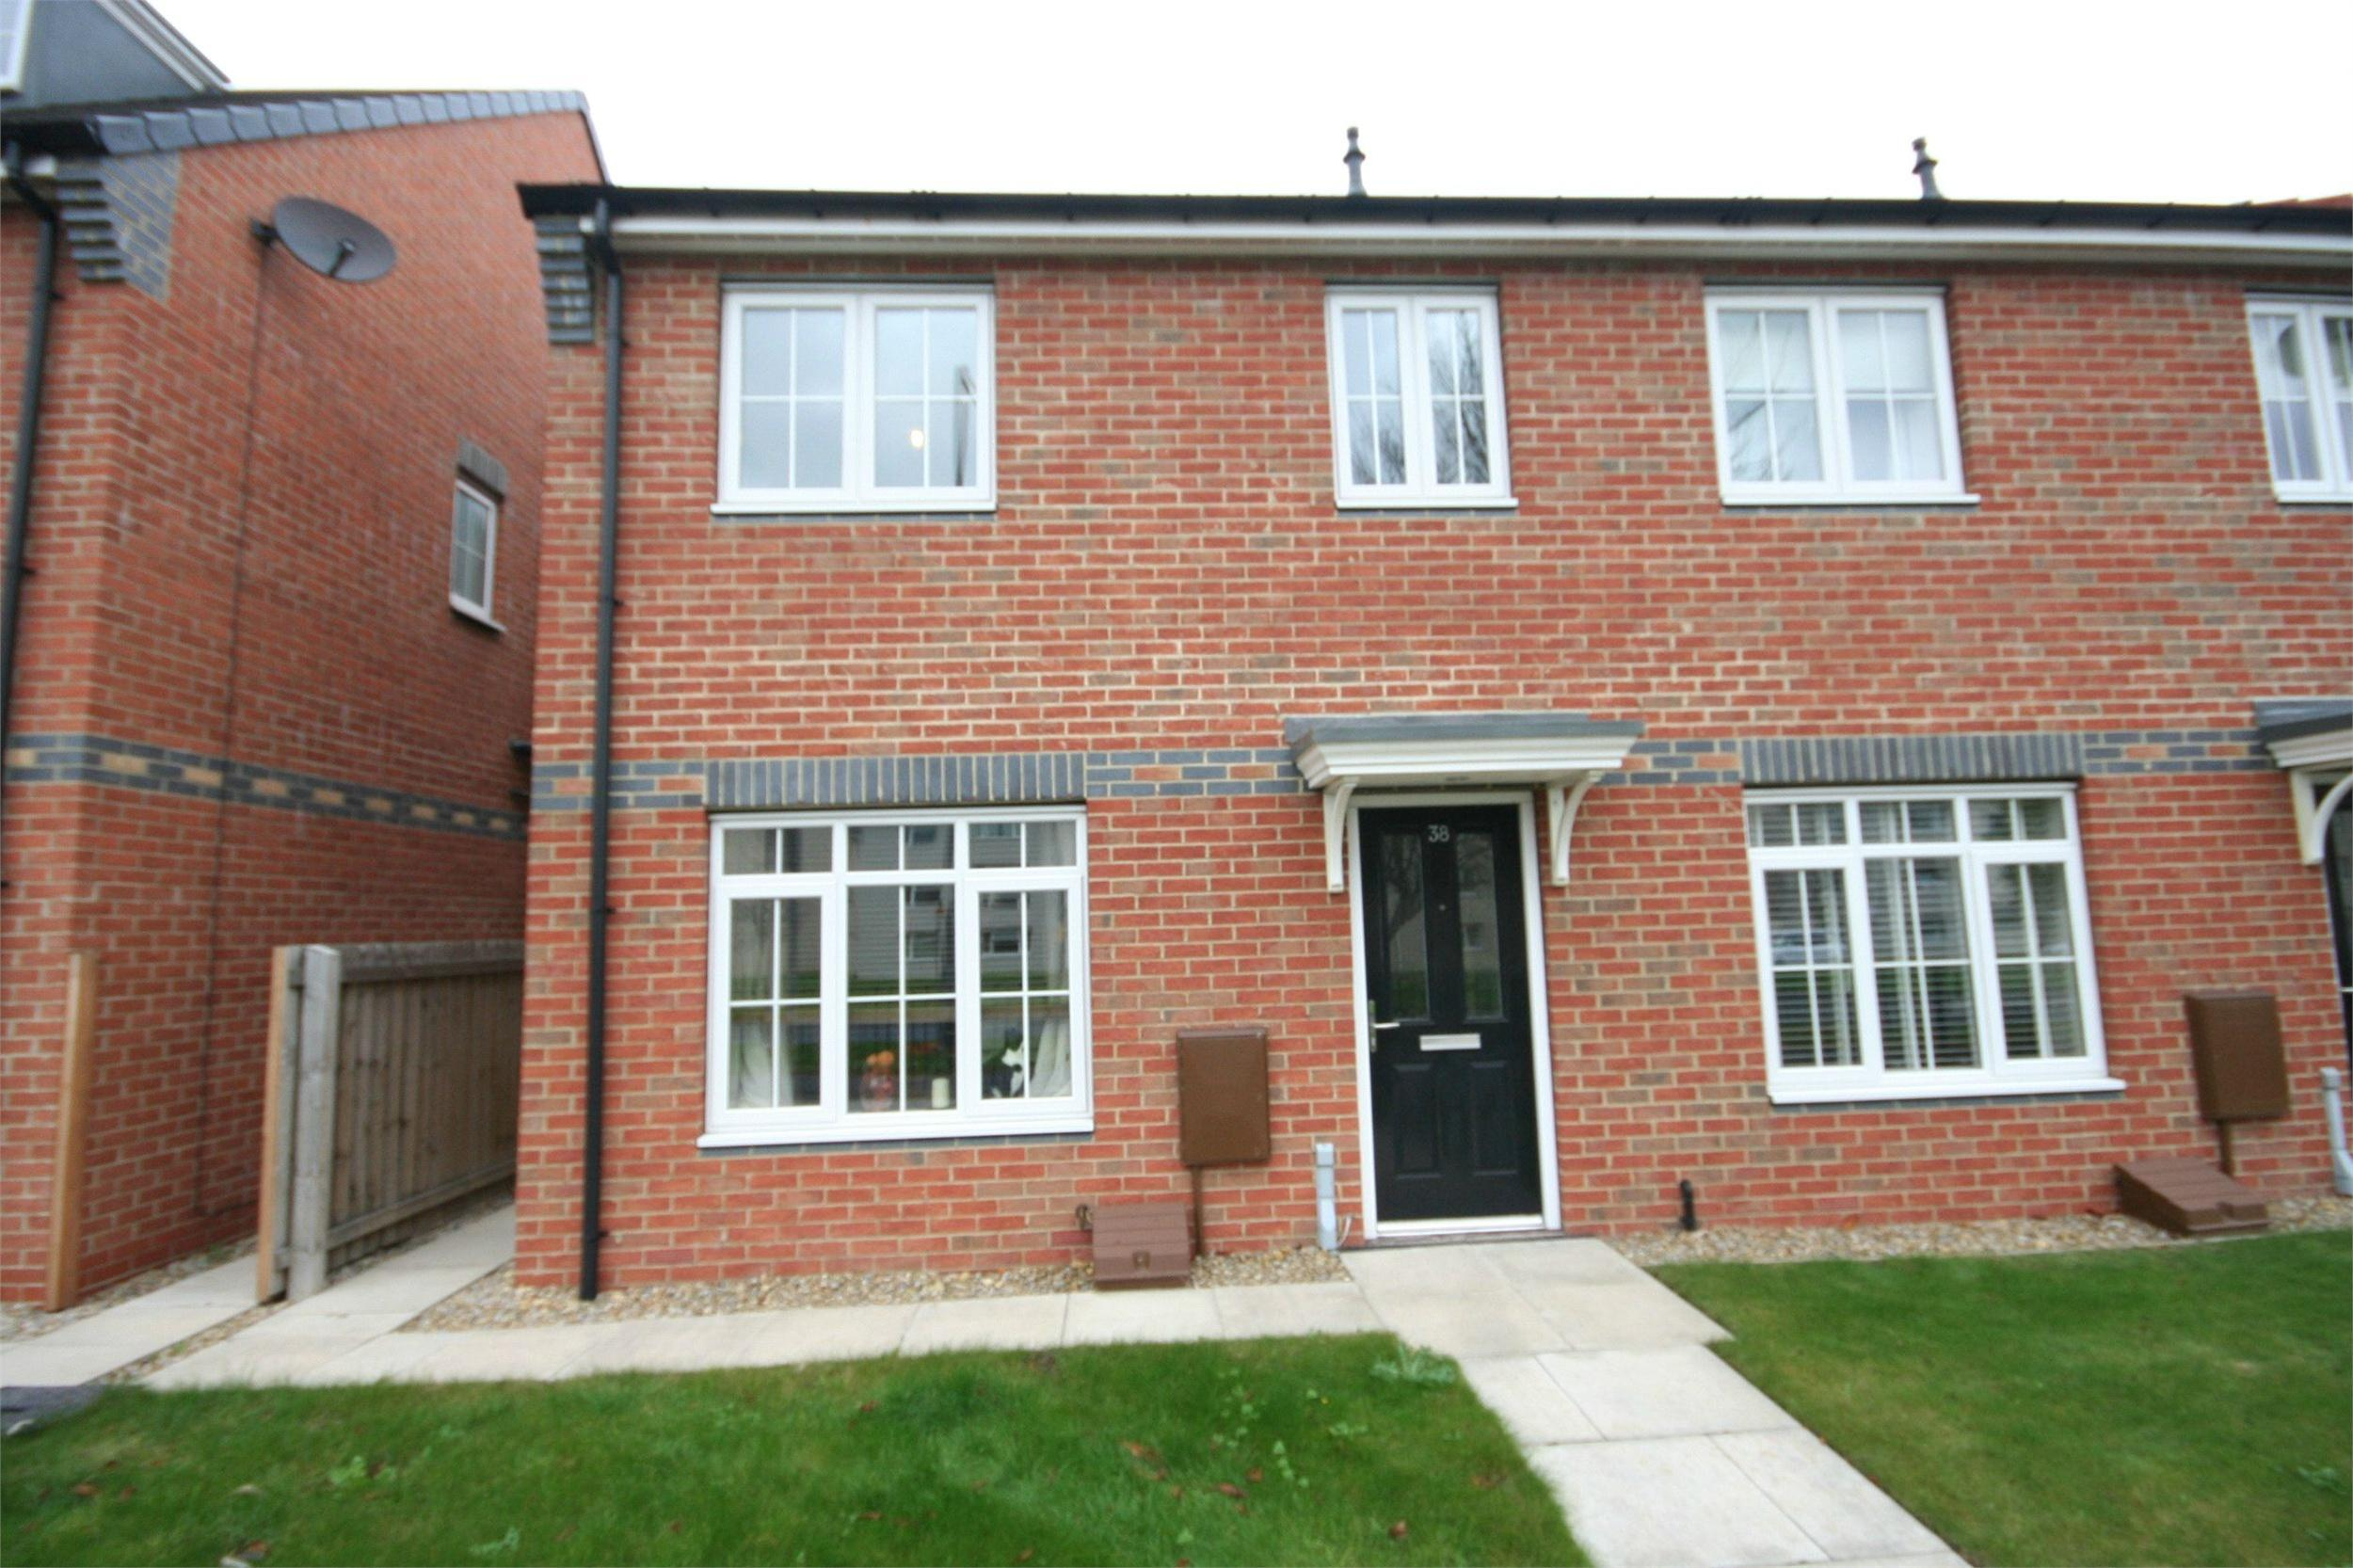 Whitegates Tees Valley 2 bedroom House to rent in The Causeway